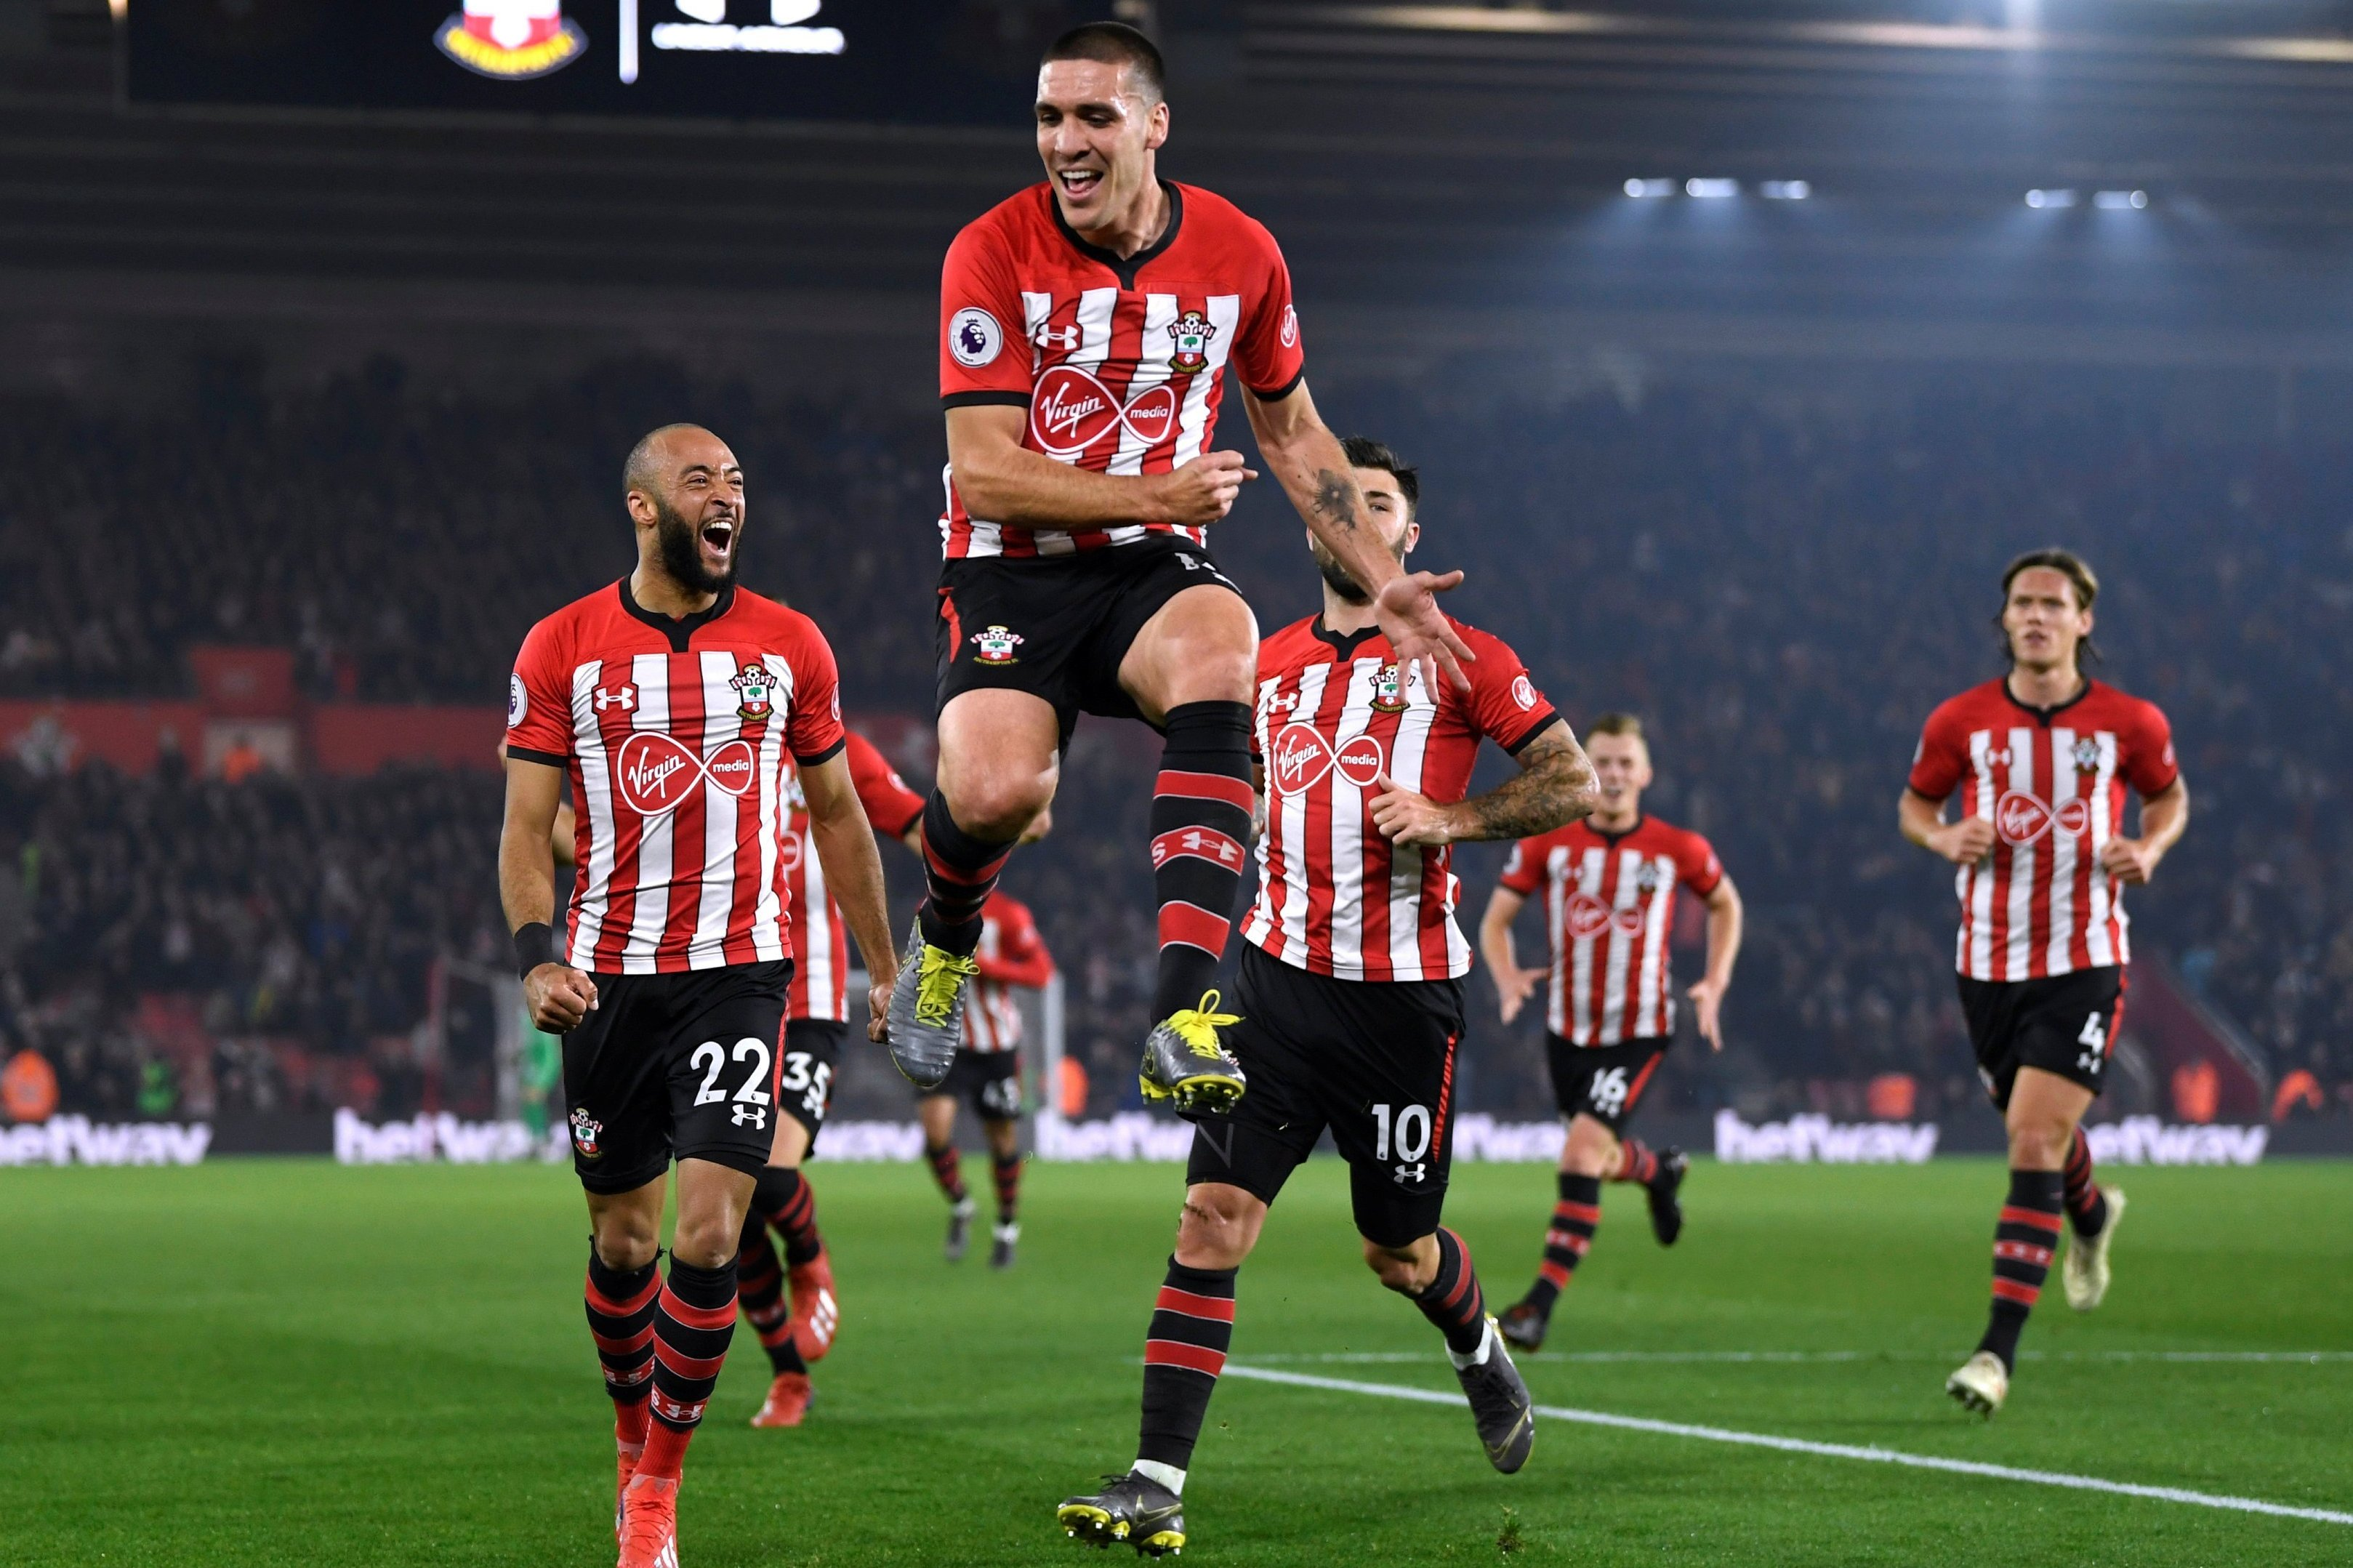 Romeu and Ward-Prowse lift Southampton out of drop zone as Fulham look destined for drop